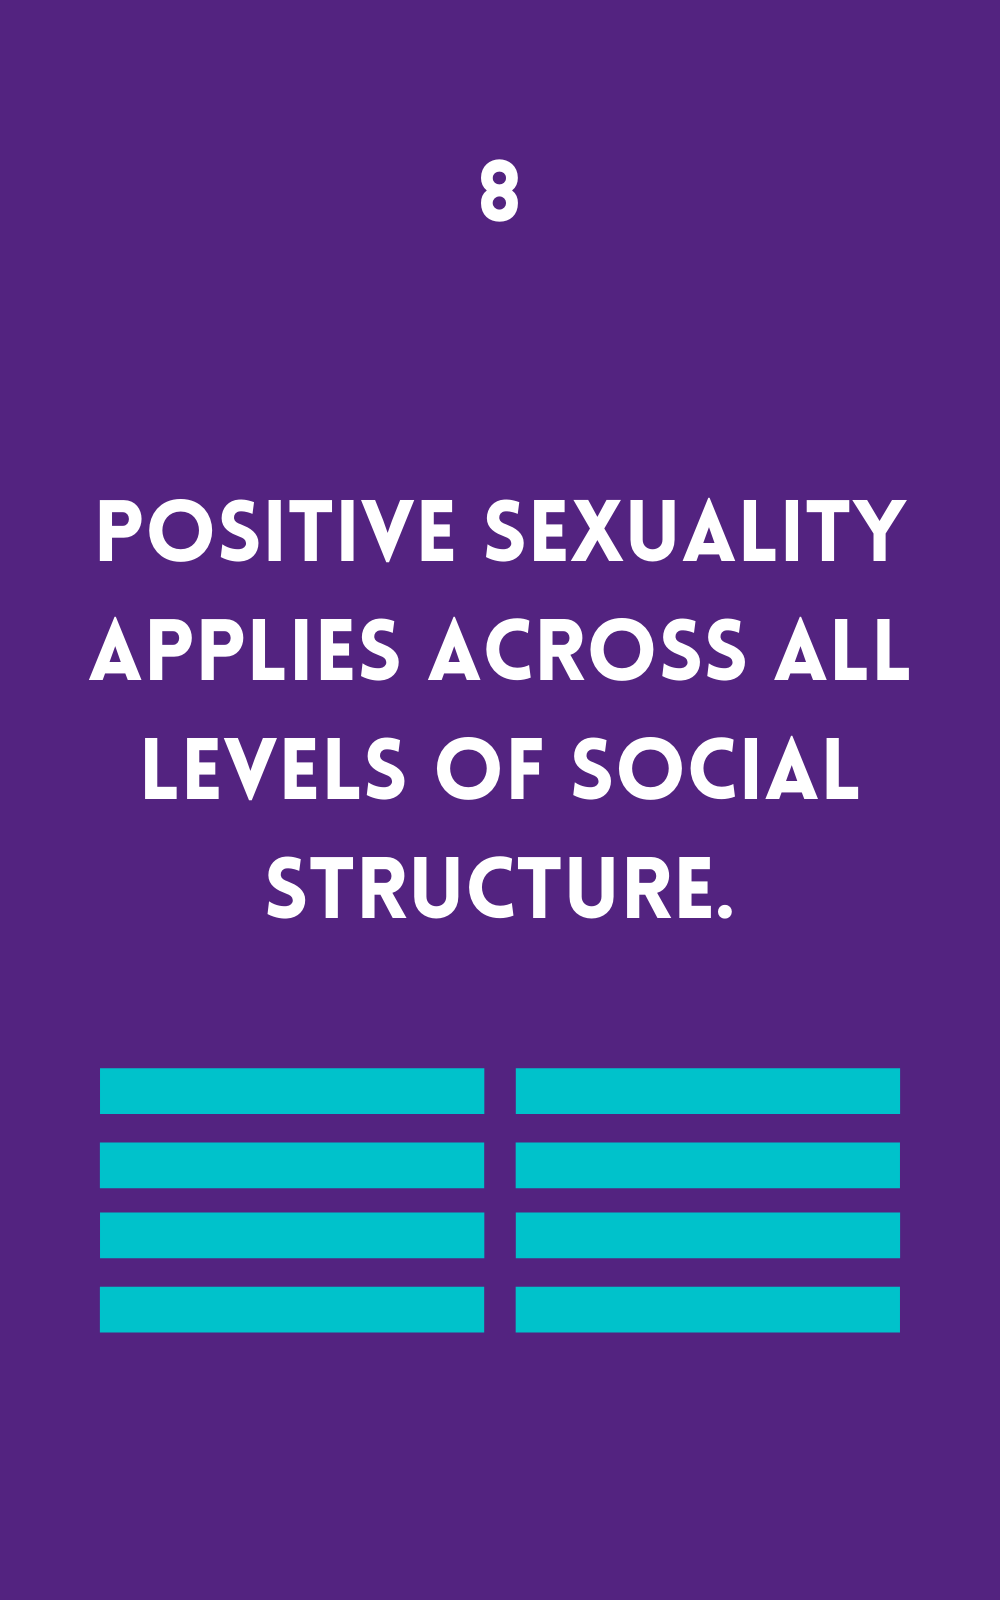 Positive Sexuality applies across all levels of social structure